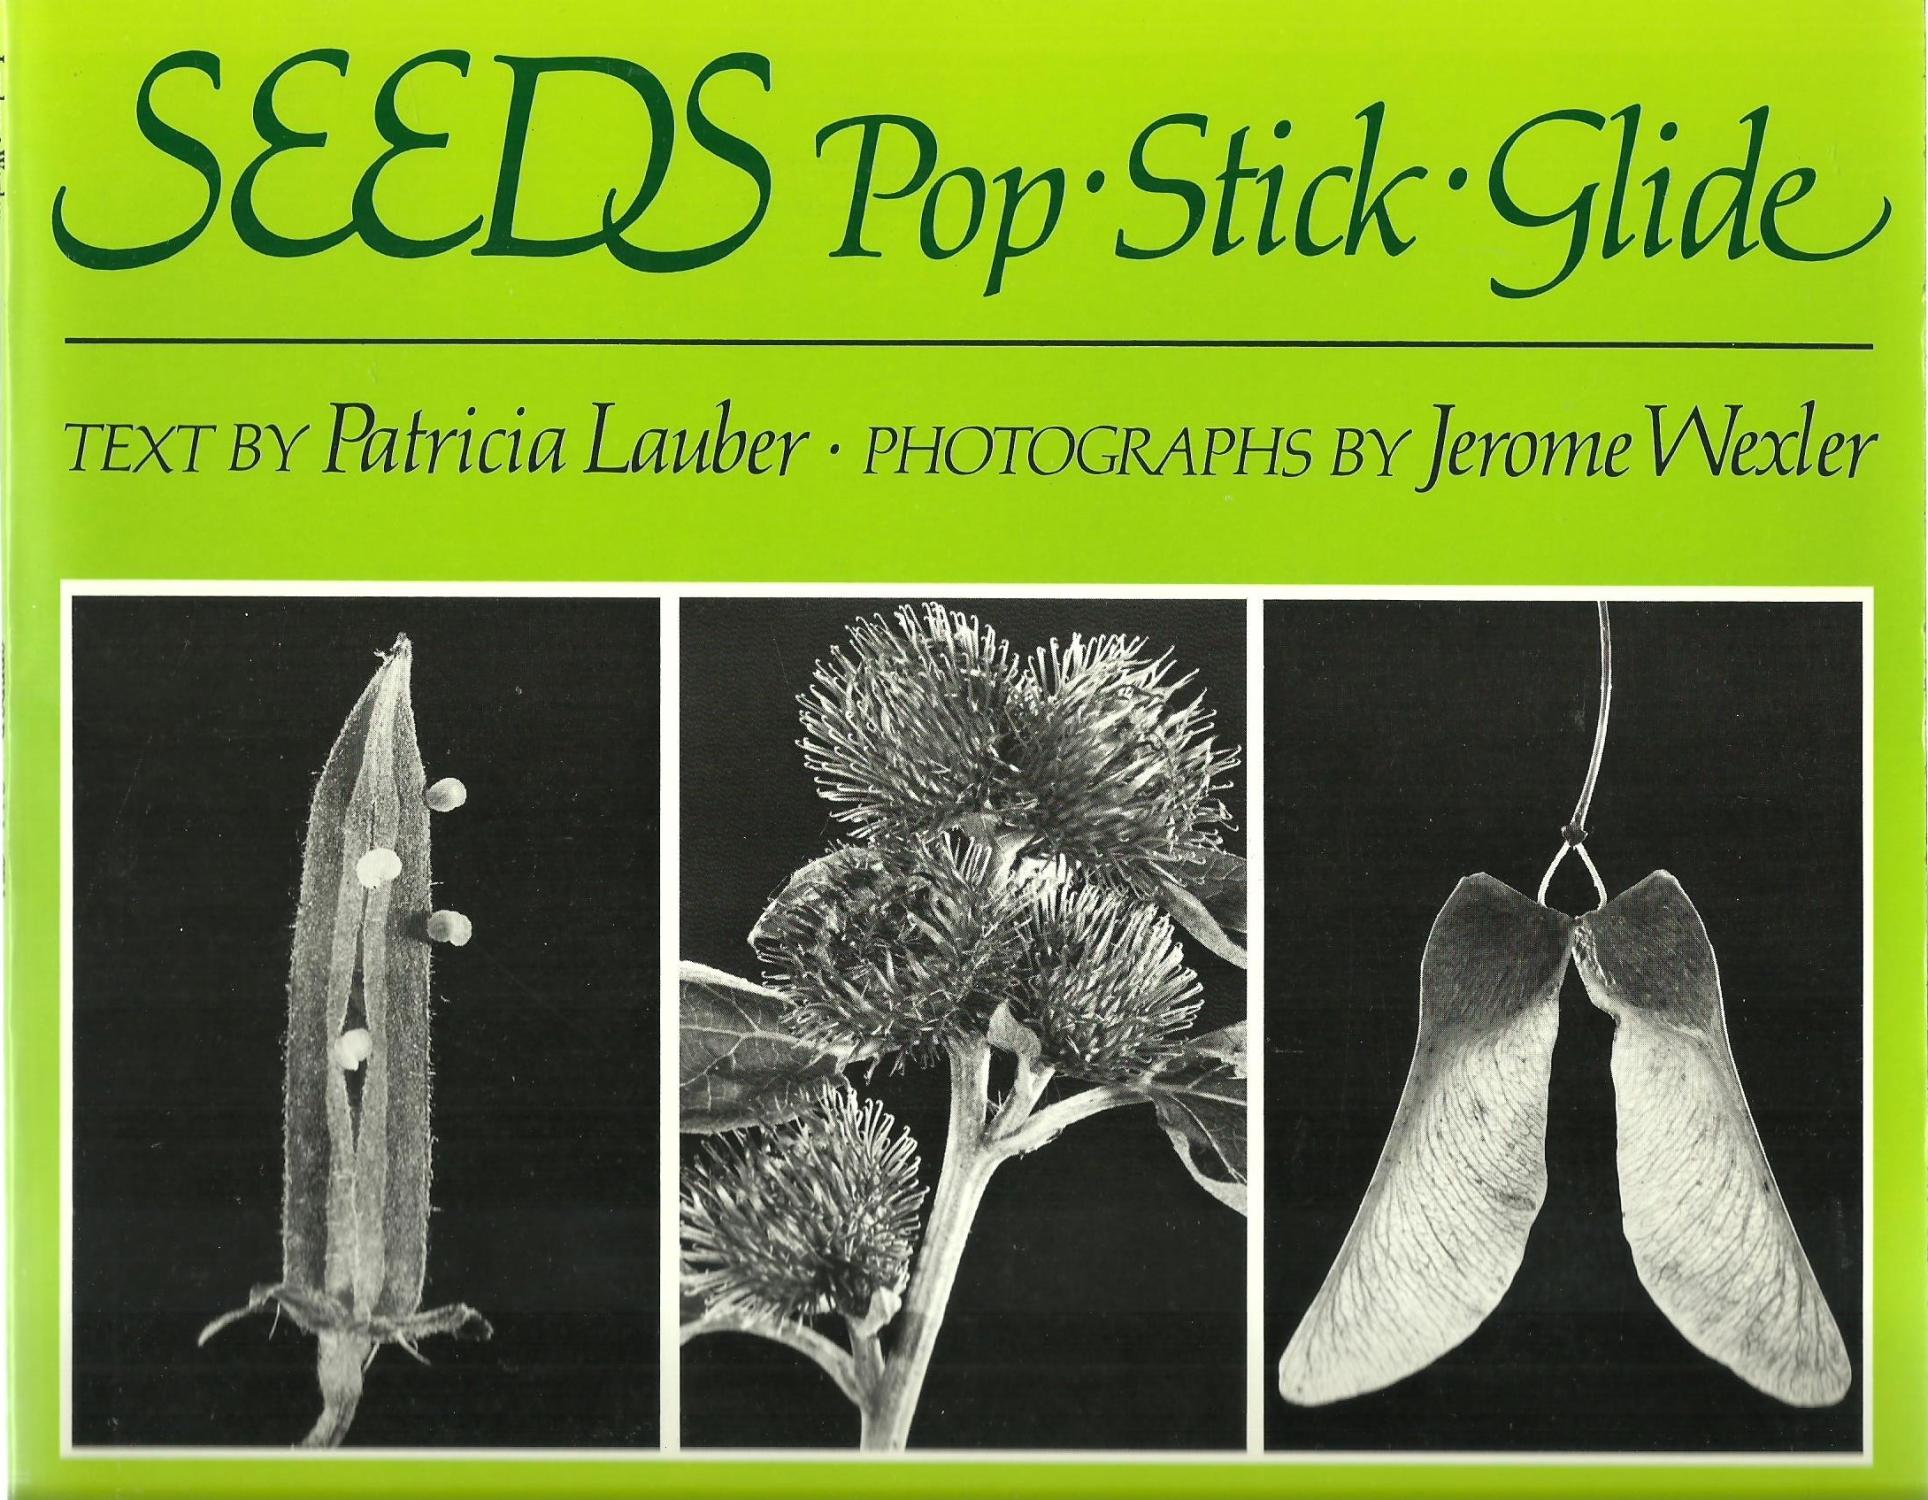 cover of Seeds Pop Stick Glide by Patricia Lauber & Jerome Wexler